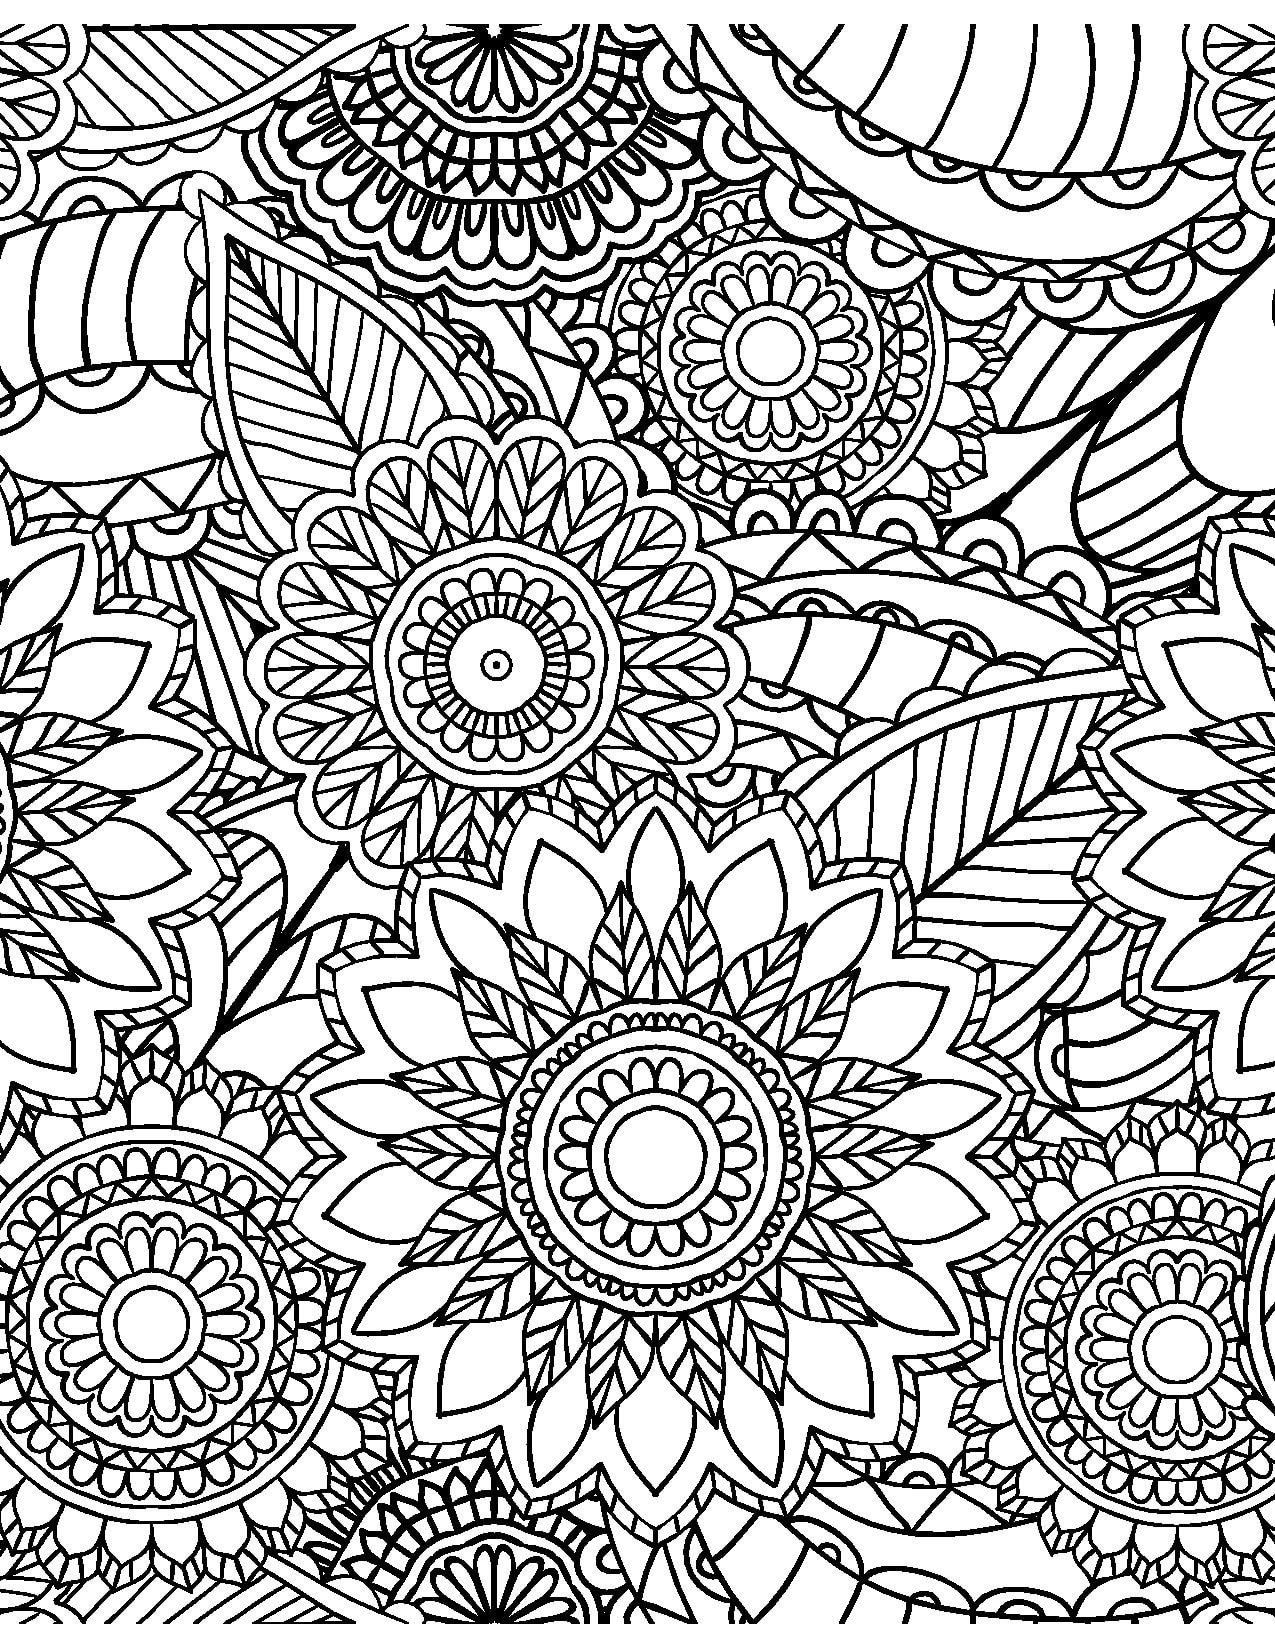 Calming Patterns For Adults Who Color Live Your Life In Color Series Coloring Book Zon Mandala Coloring Pages Pattern Coloring Pages Mandala Coloring Books